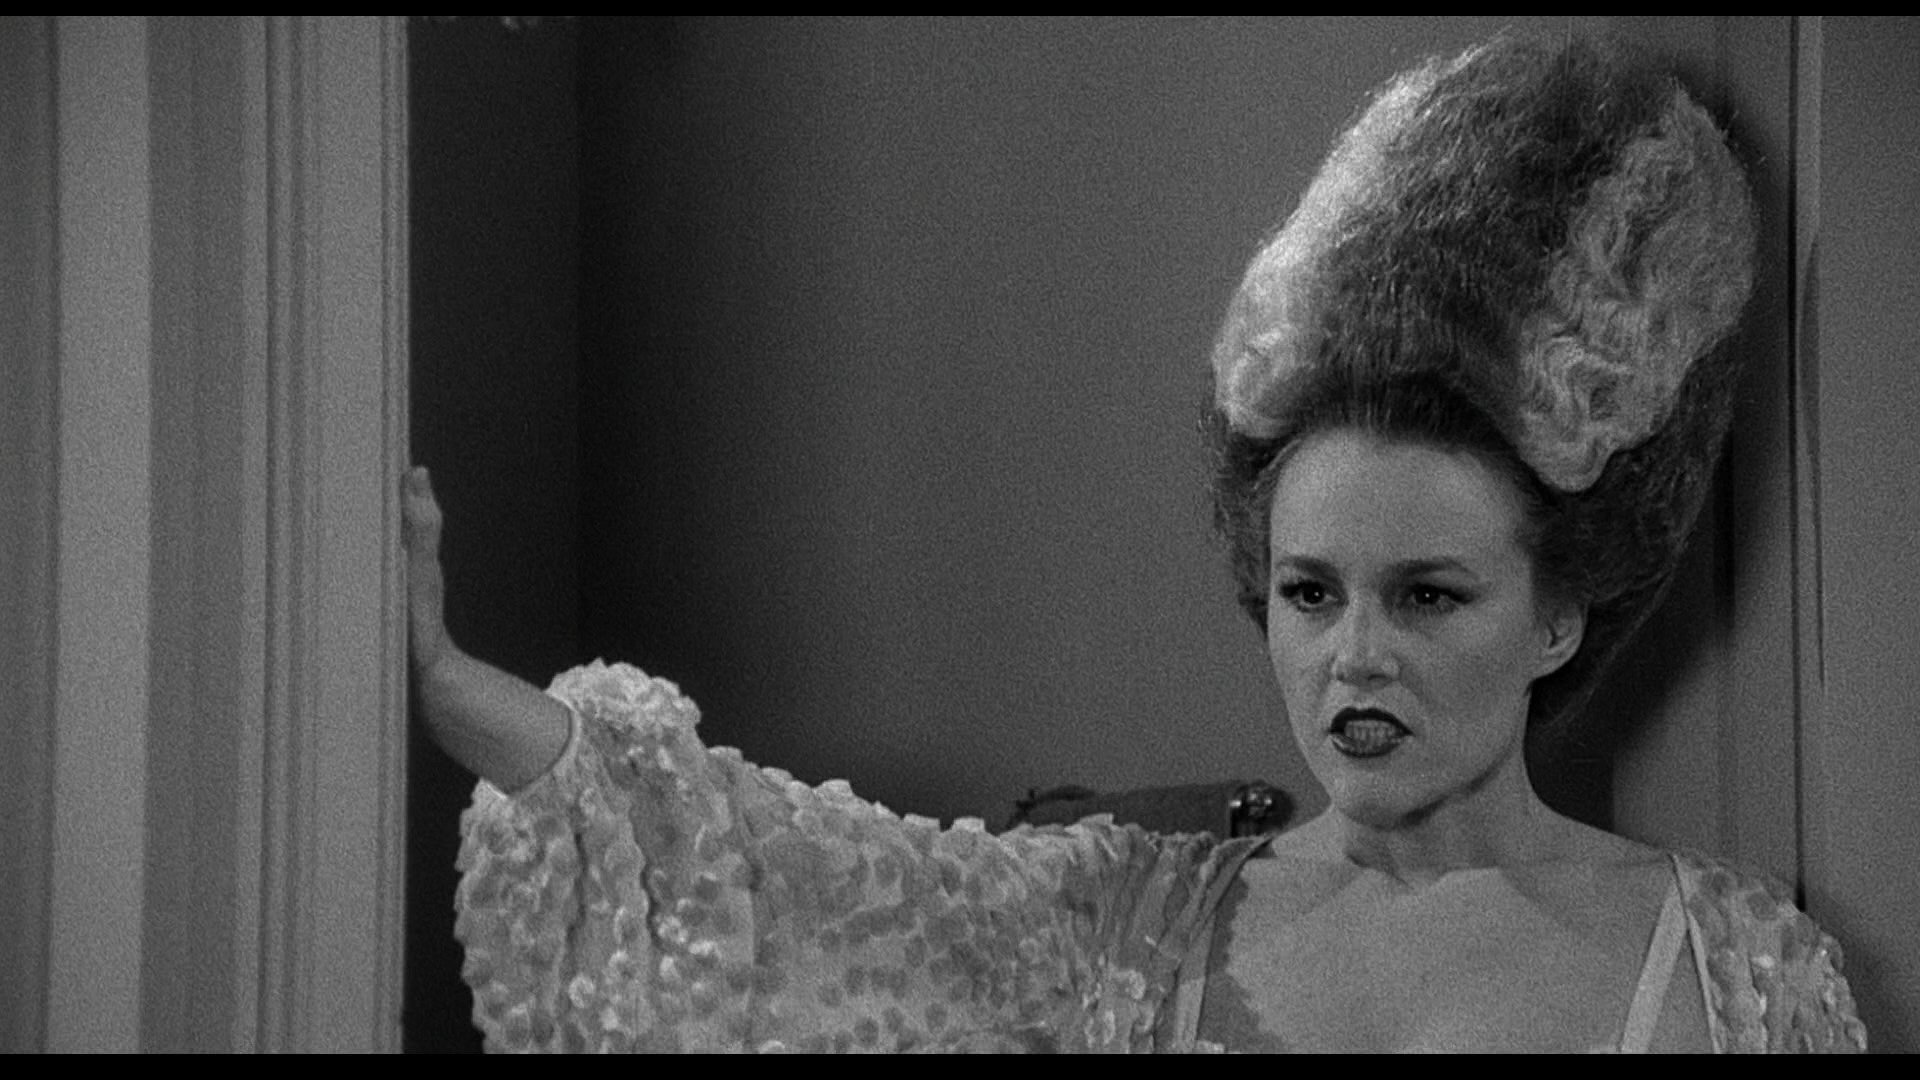 SIR EDWIN FLUFFER'S HOLLYWOOD SUPERSTARS. 2. MADELINE KAHN